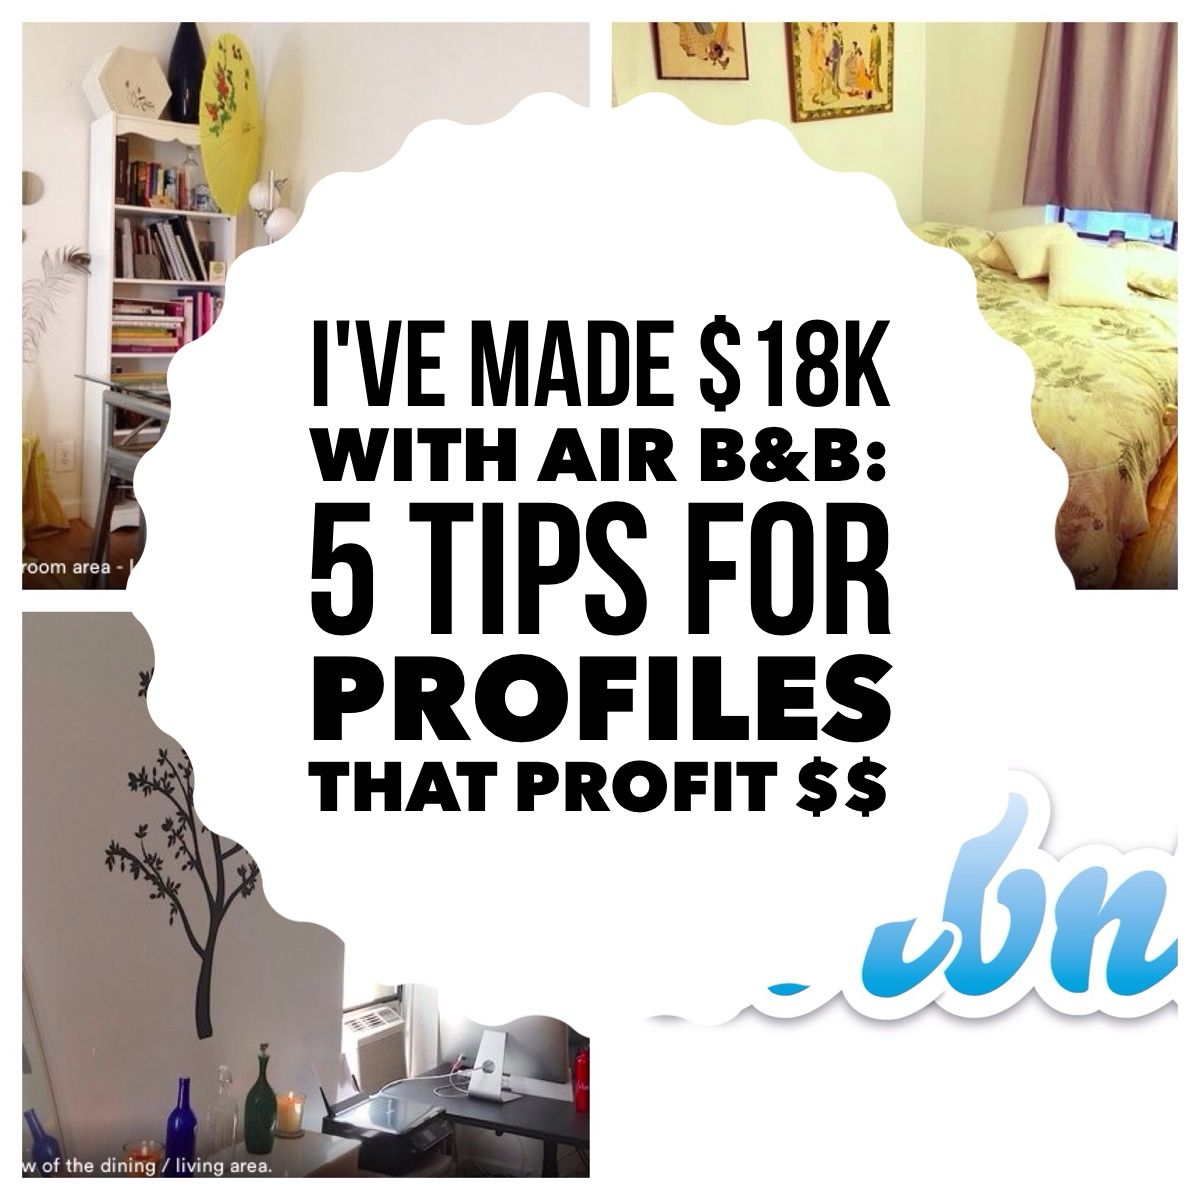 Ebay Apartment For Rent: How-Ive-Made-18K-Using-Air-B-B-5-Tips-for-Profiles-That